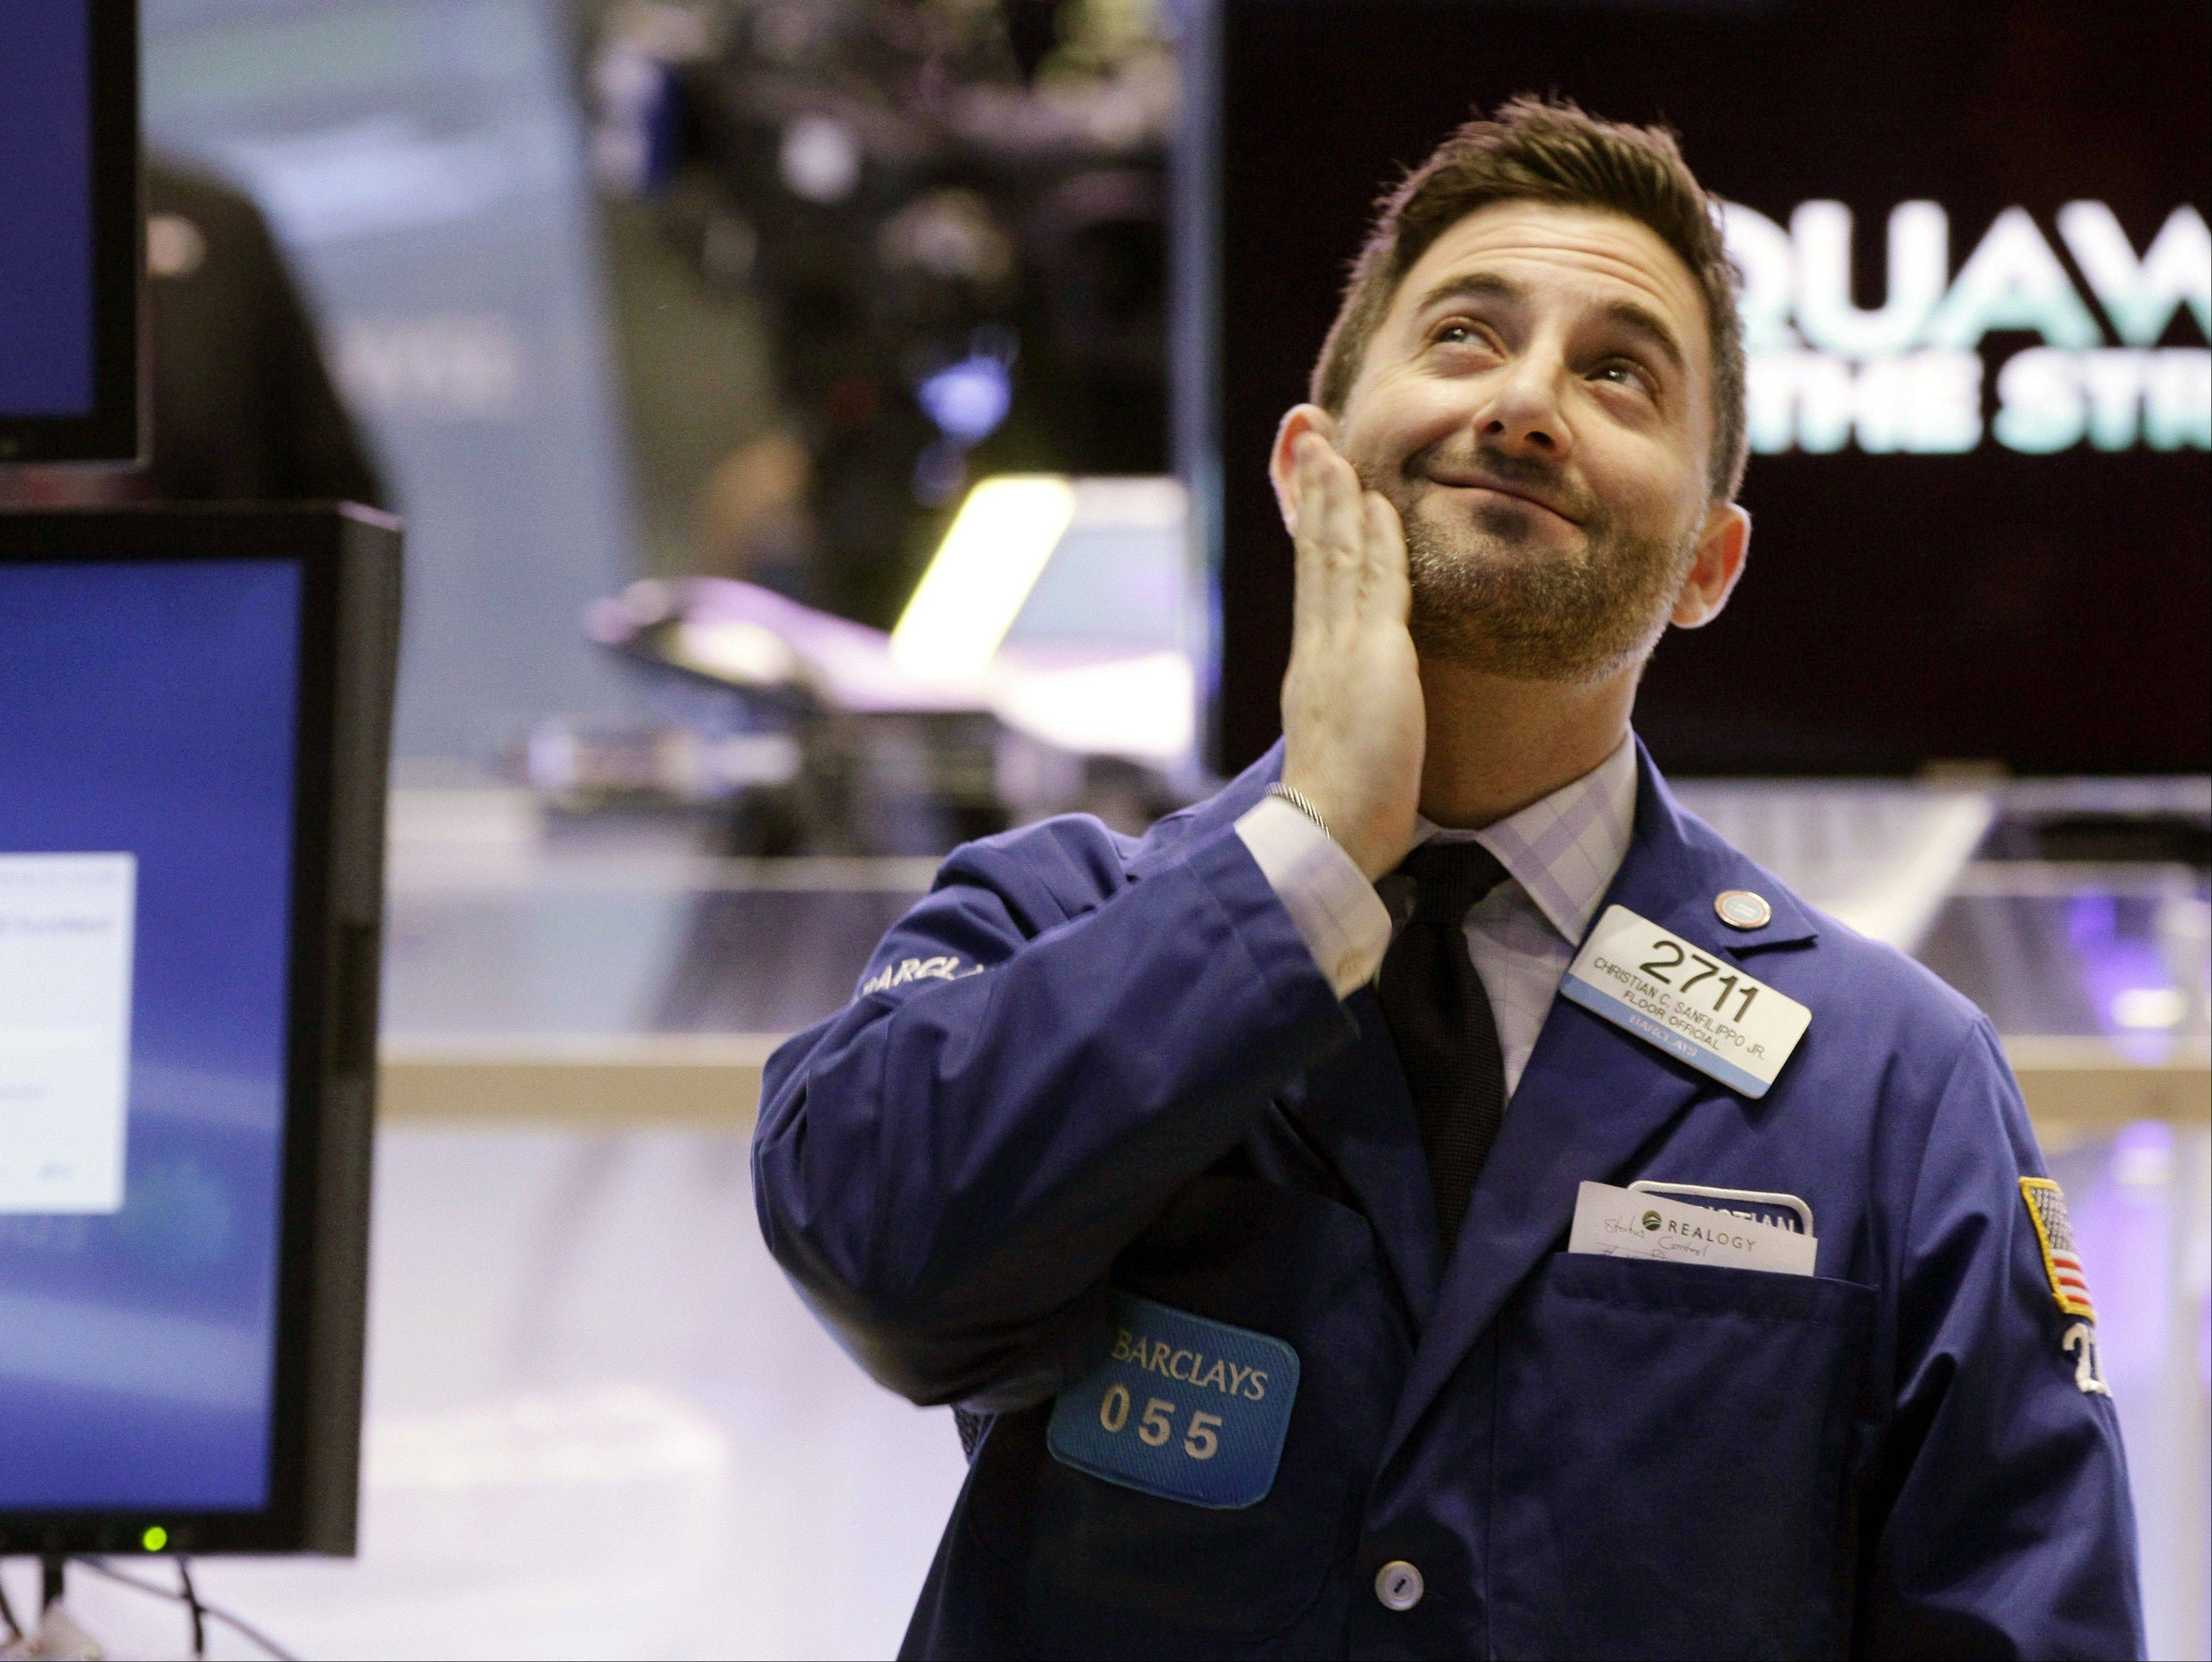 Specialist Christian Sanfilippo works Tuesday on the floor of the New York Stock Exchange.